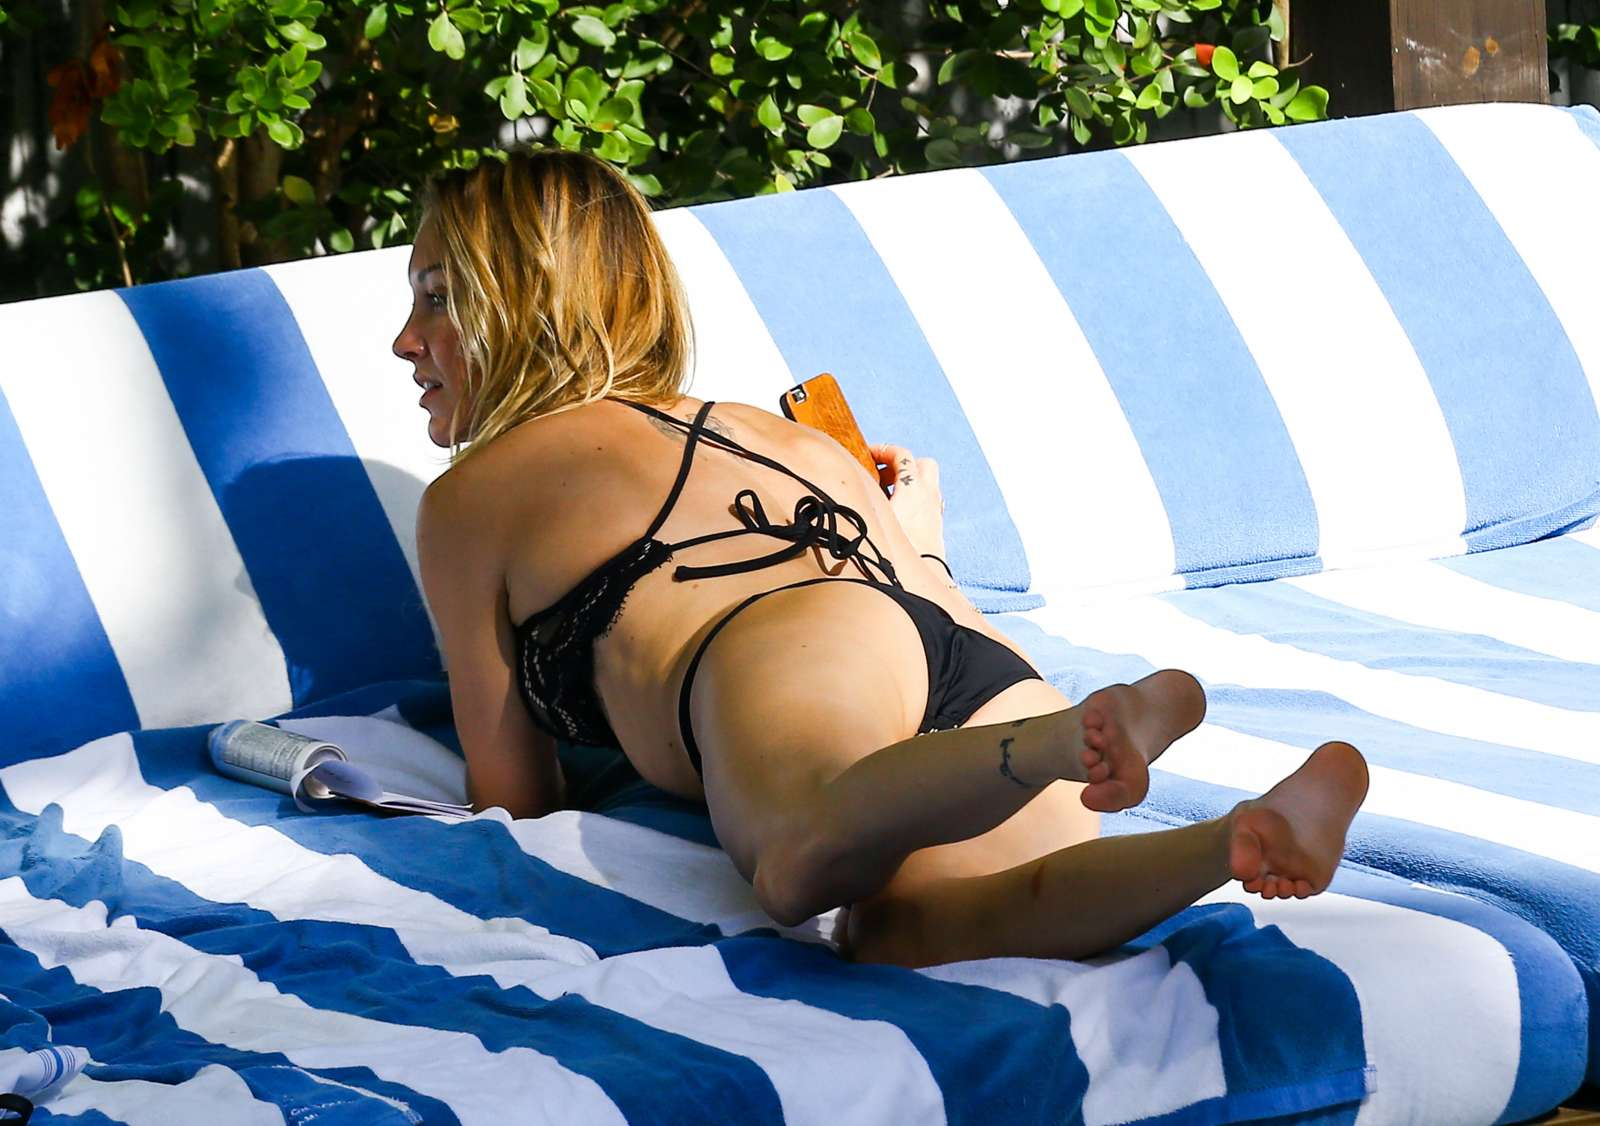 Katie Cassidy in Black Bikini at the pool in Miami   Katie-Cassidy-in-Black-Bikini-2016--25